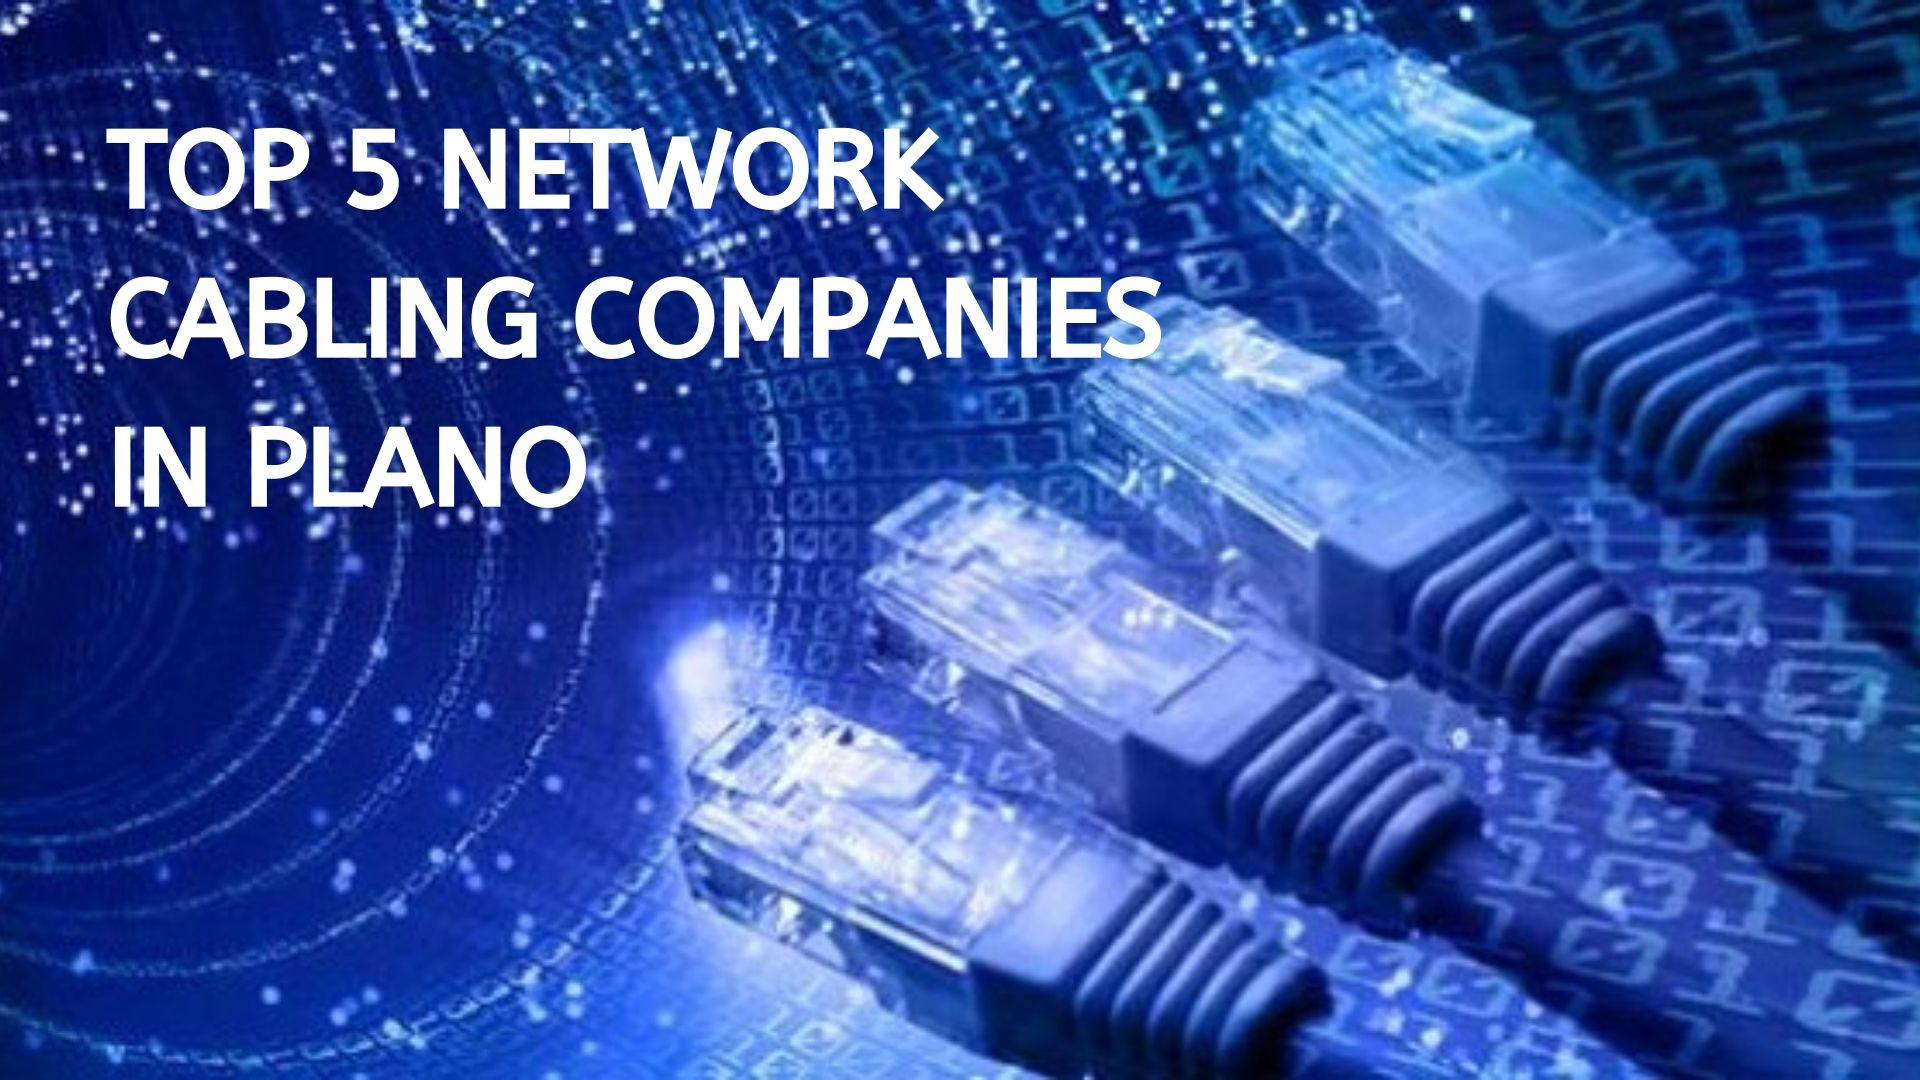 Top 5 Network Cabling Companies in Plano